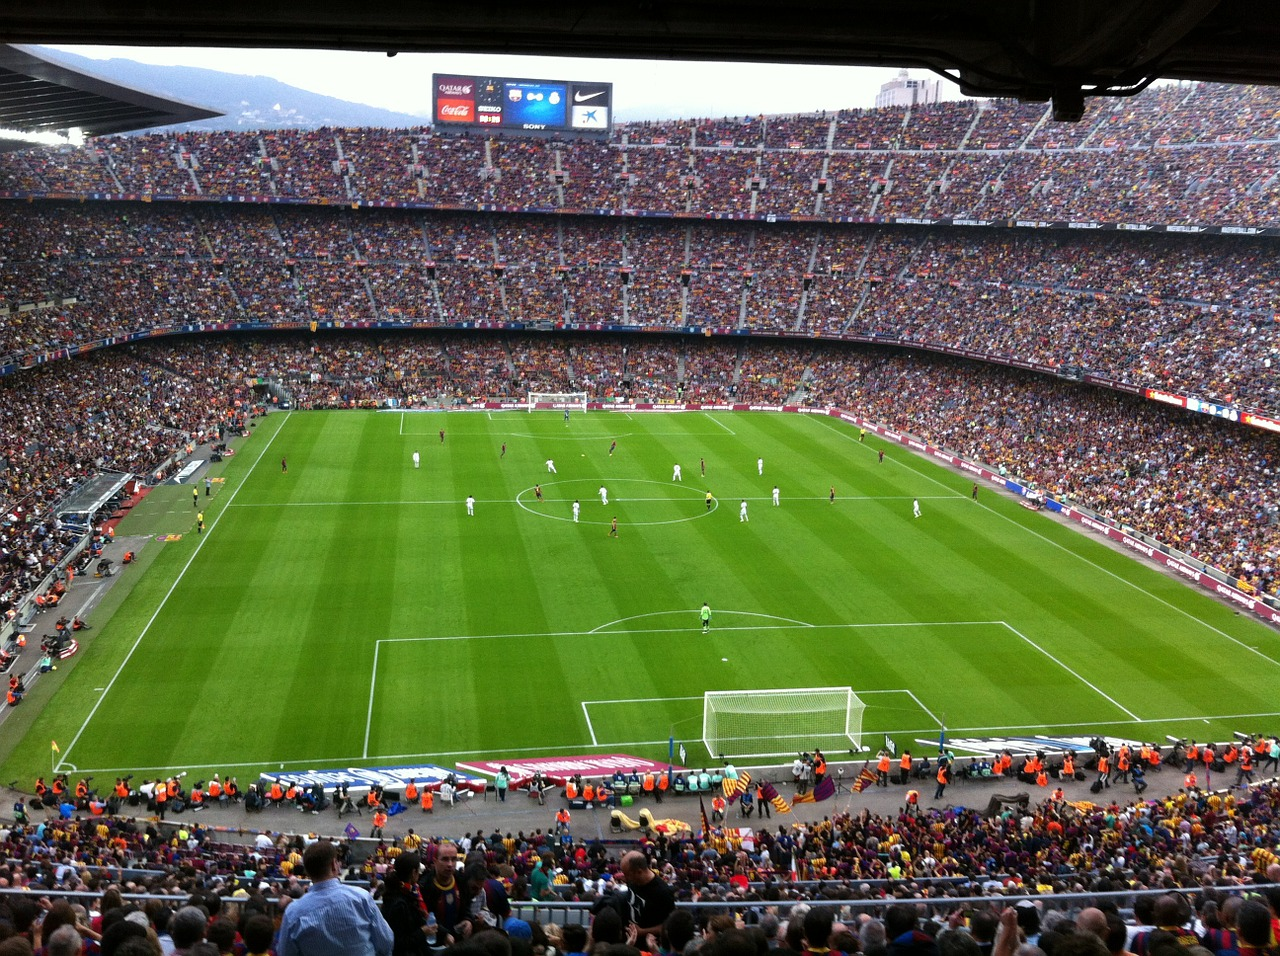 Reserva tu Parking para la Final de la Copa del Rey 2015 en el Camp Nou